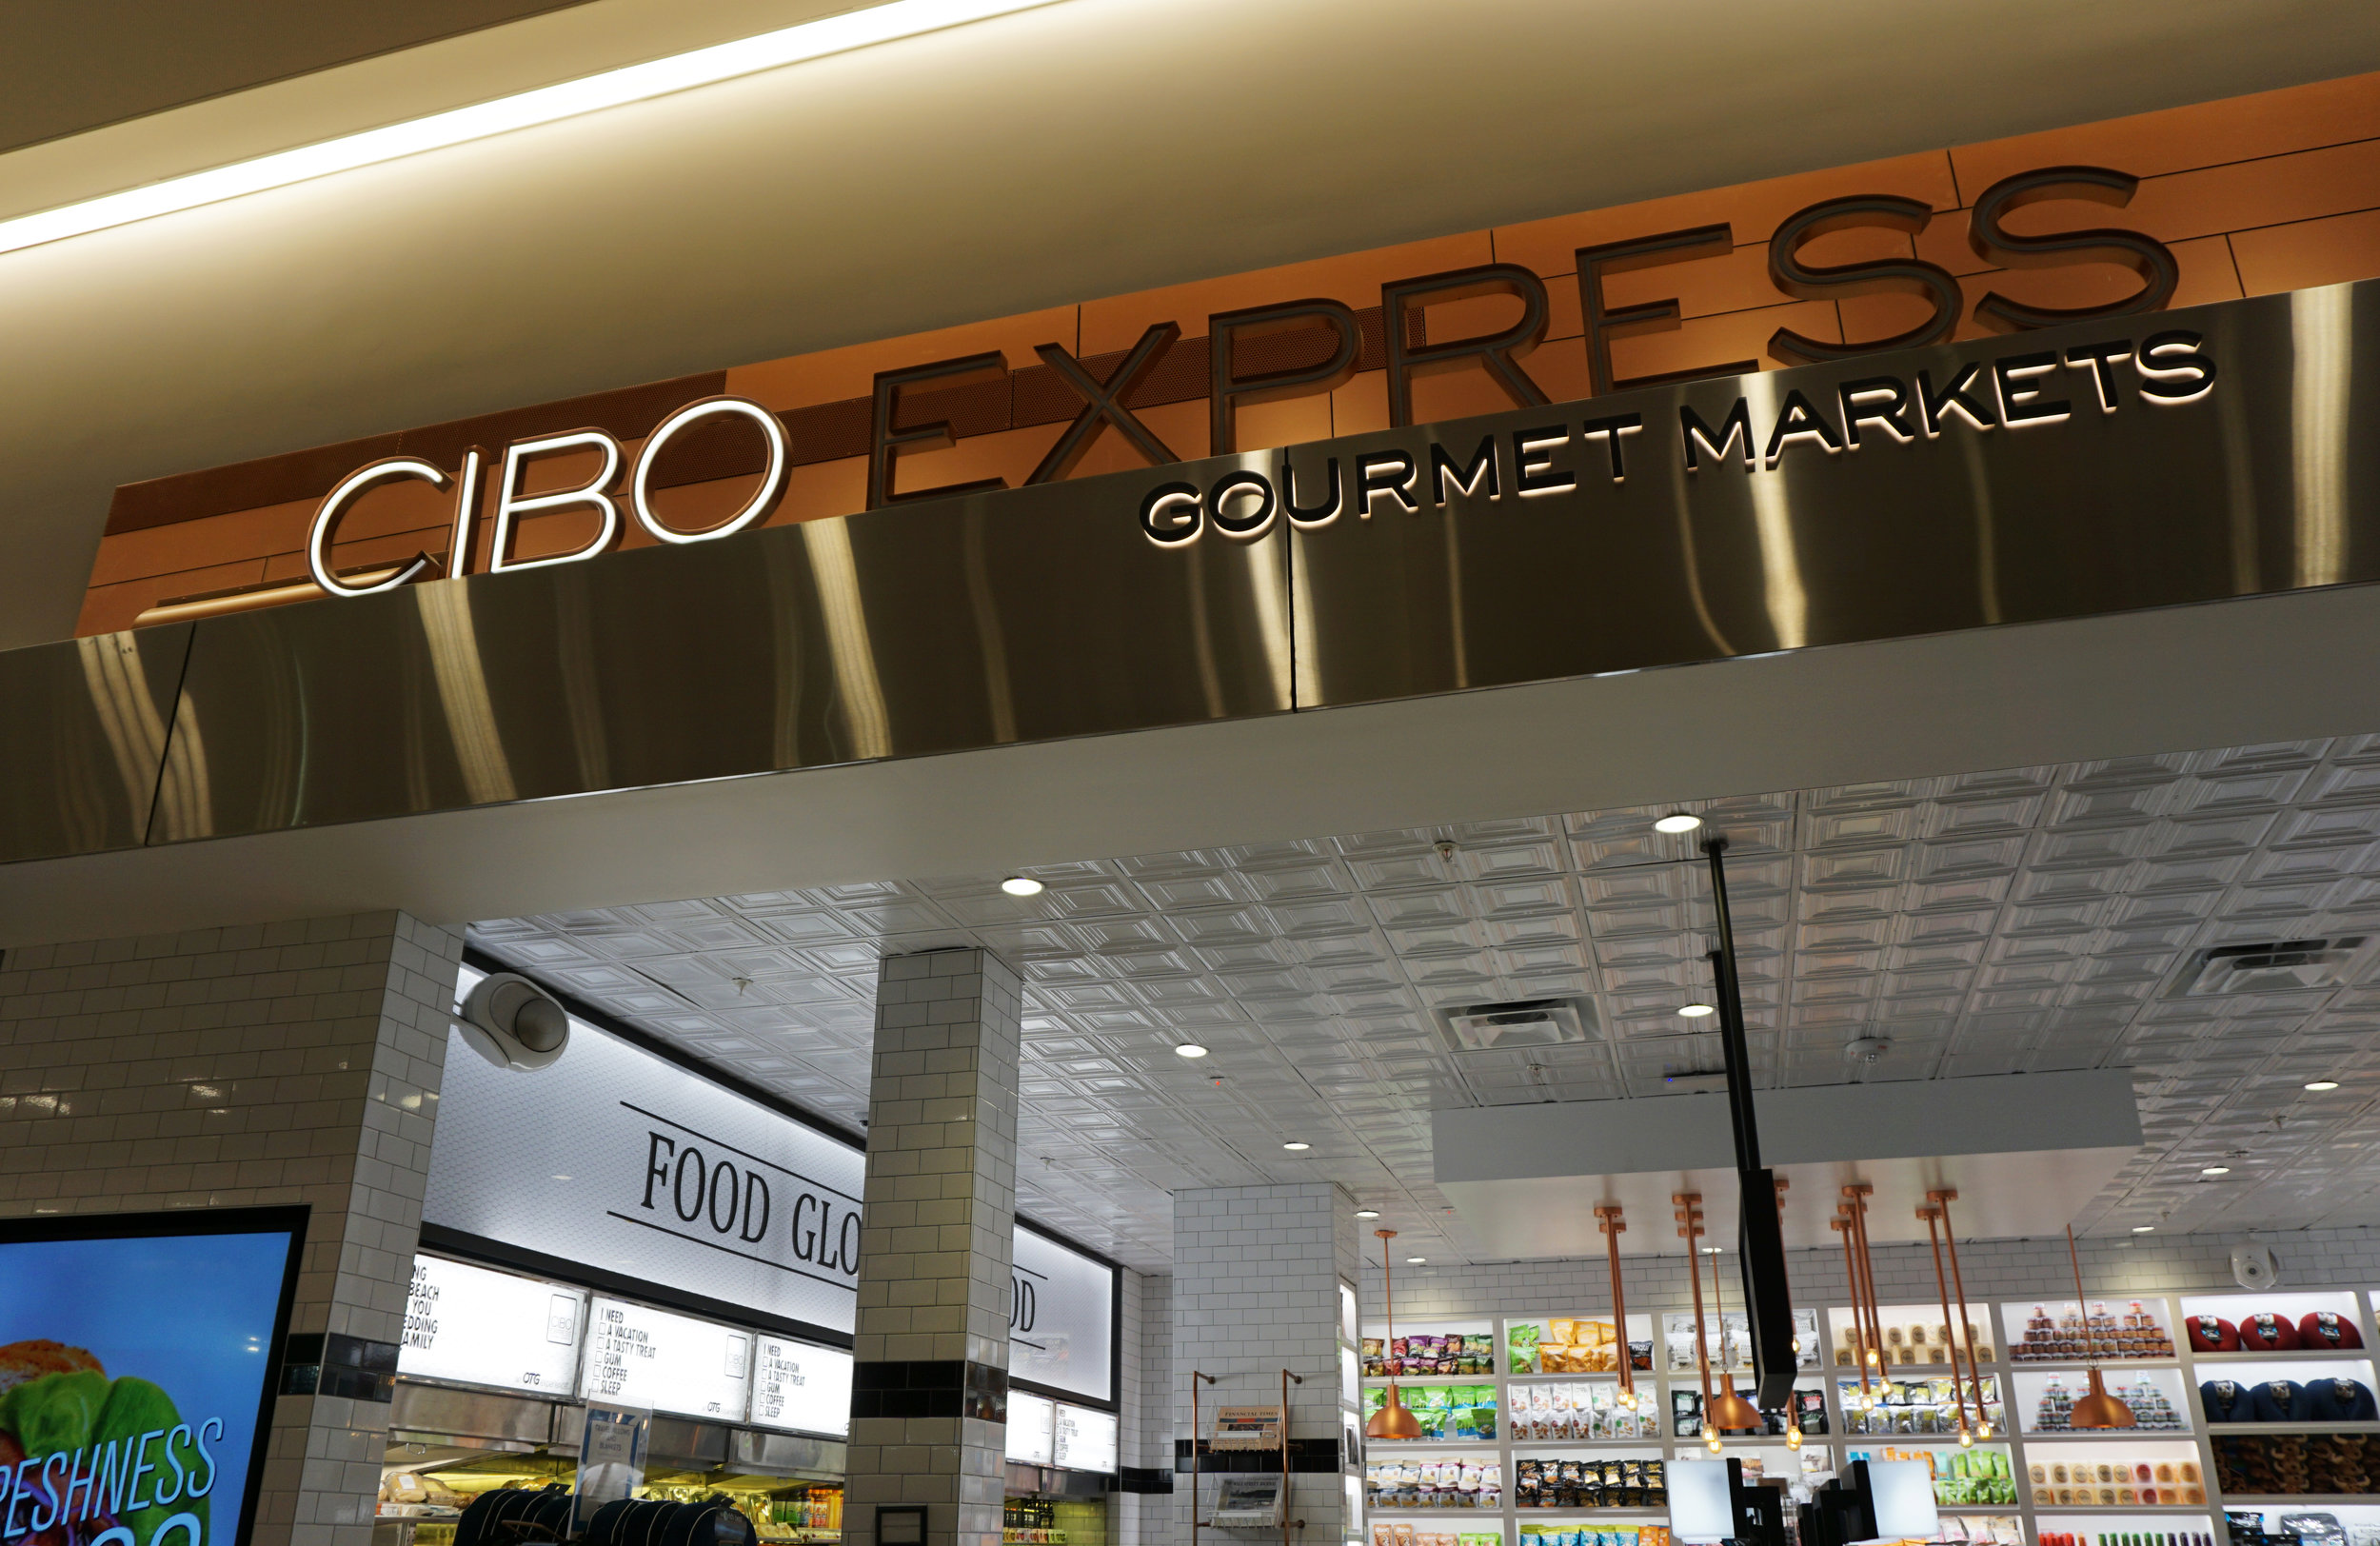 a homophone in houston - CIBO sounds like SIBO (small intestinal bacterial overgrowth), implicated in the cause of chronic diarrhea. Not a great name for an airport food emporium.